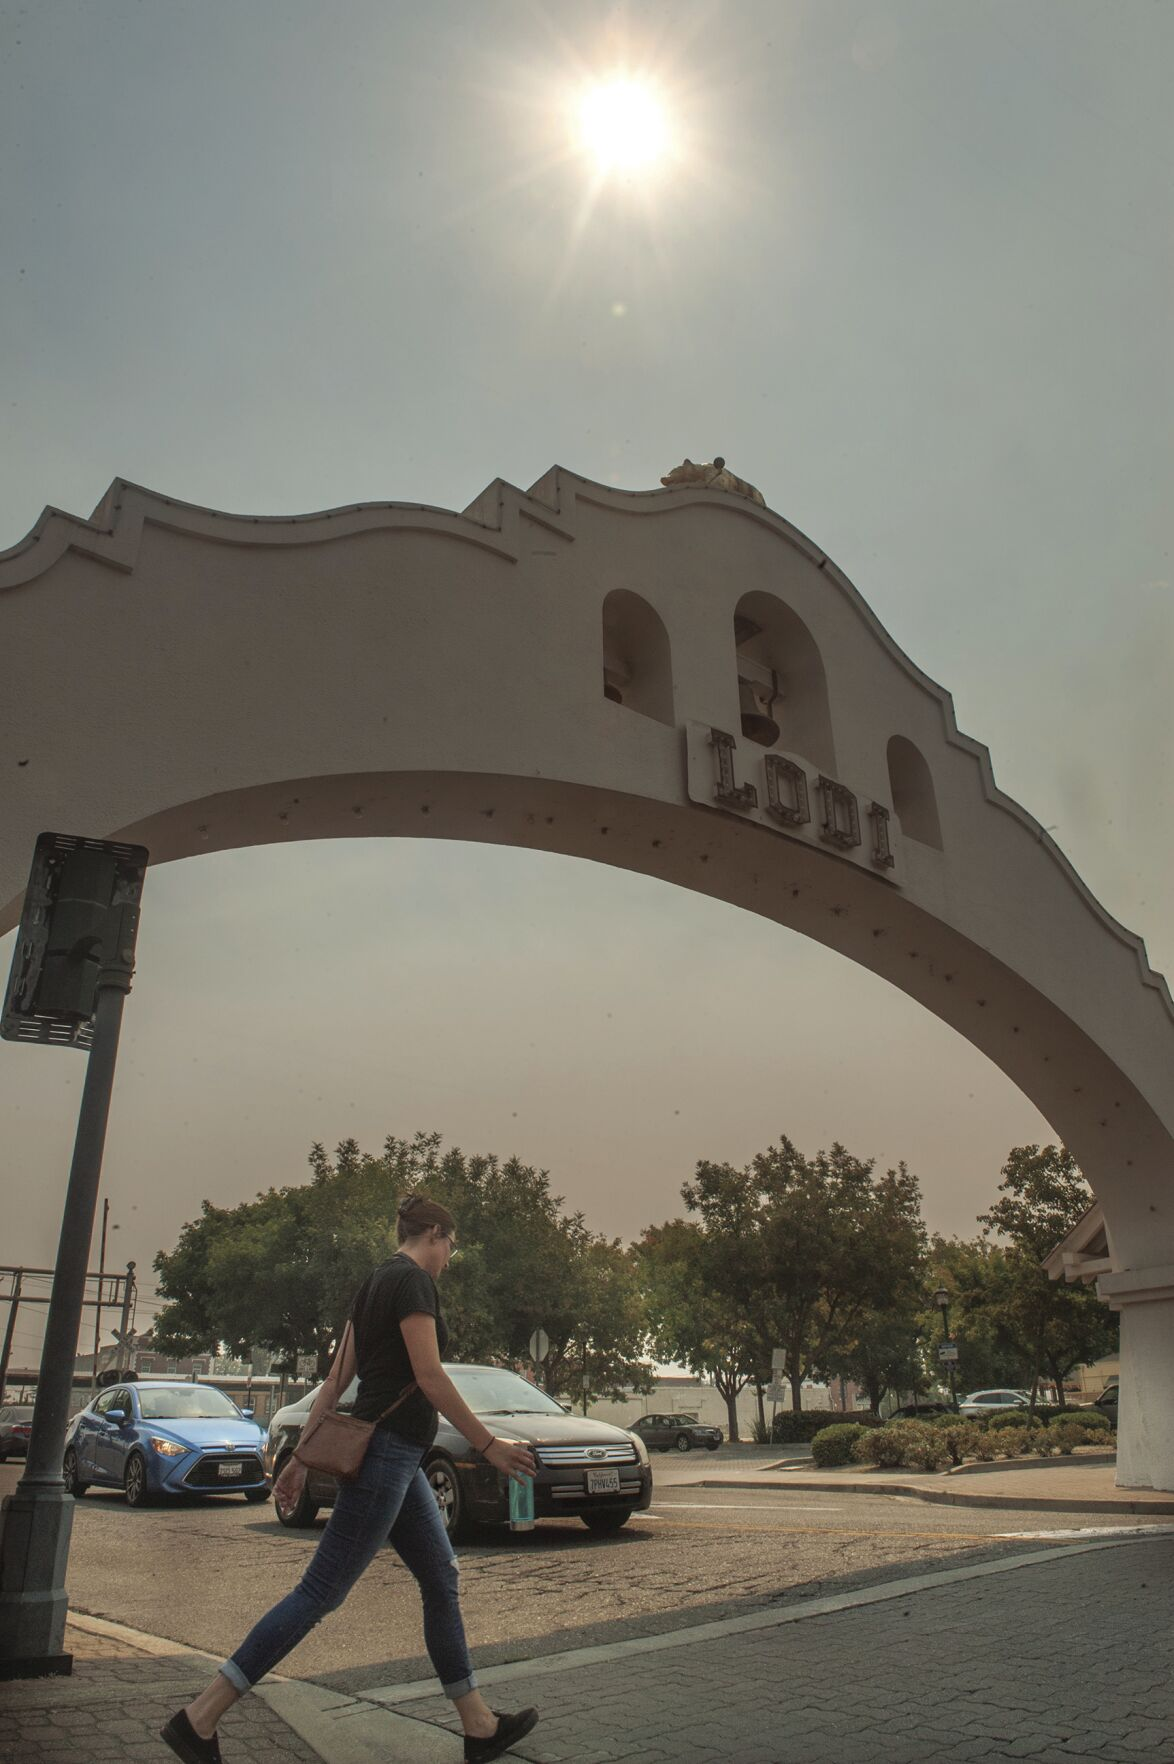 Smoke blankets the Lodi area as wildfires burn throughout state